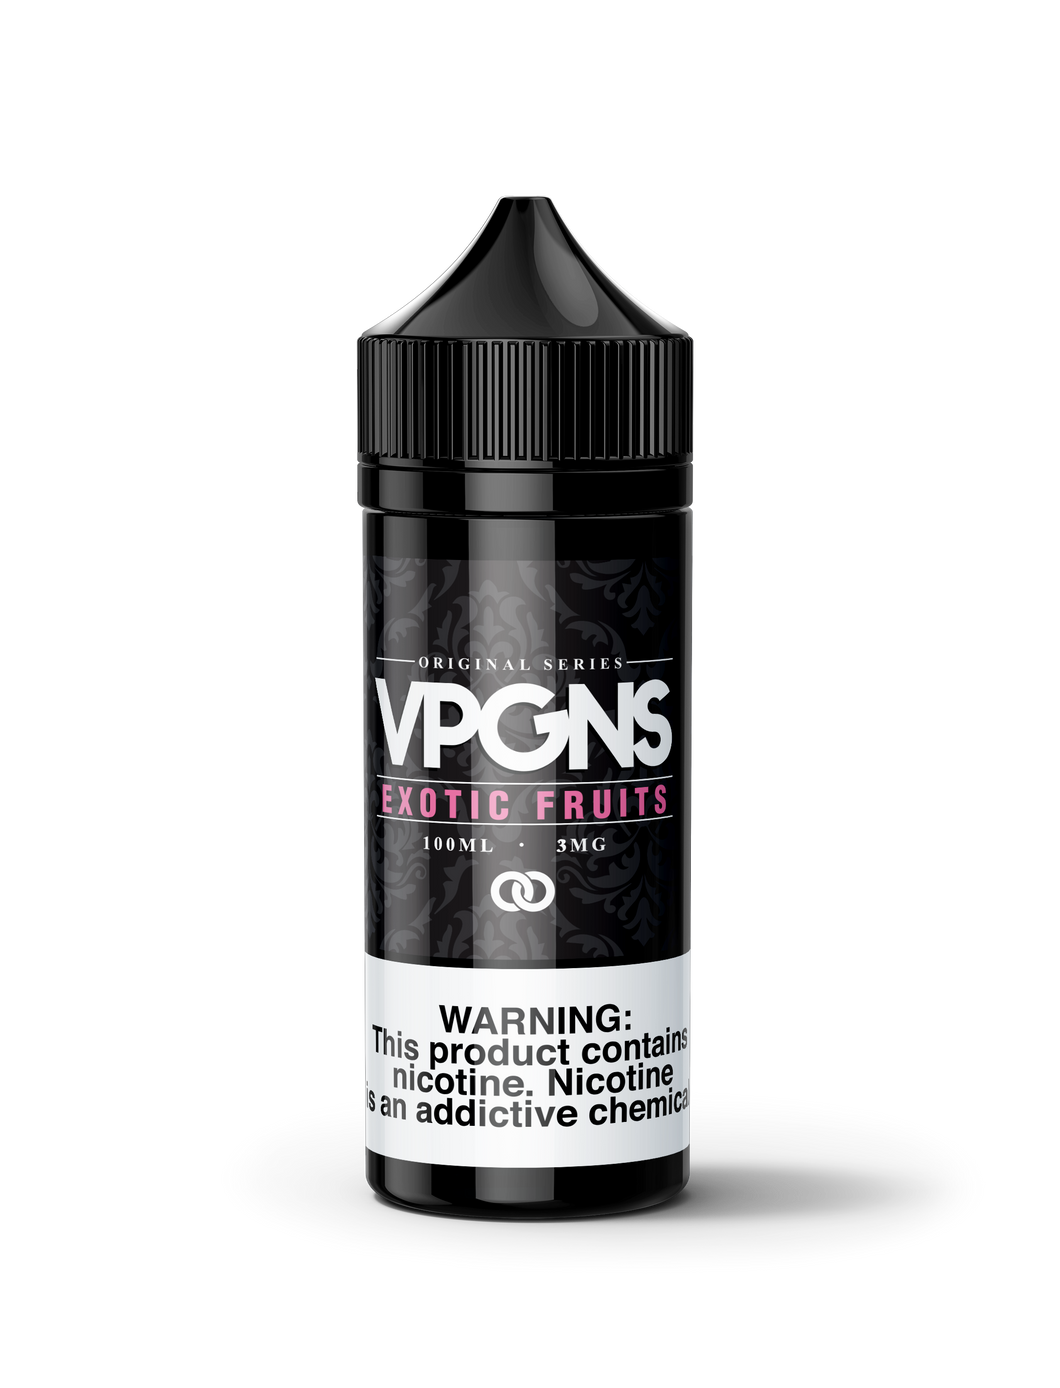 VPGNS-Exotic Fruits AKA Orgasm